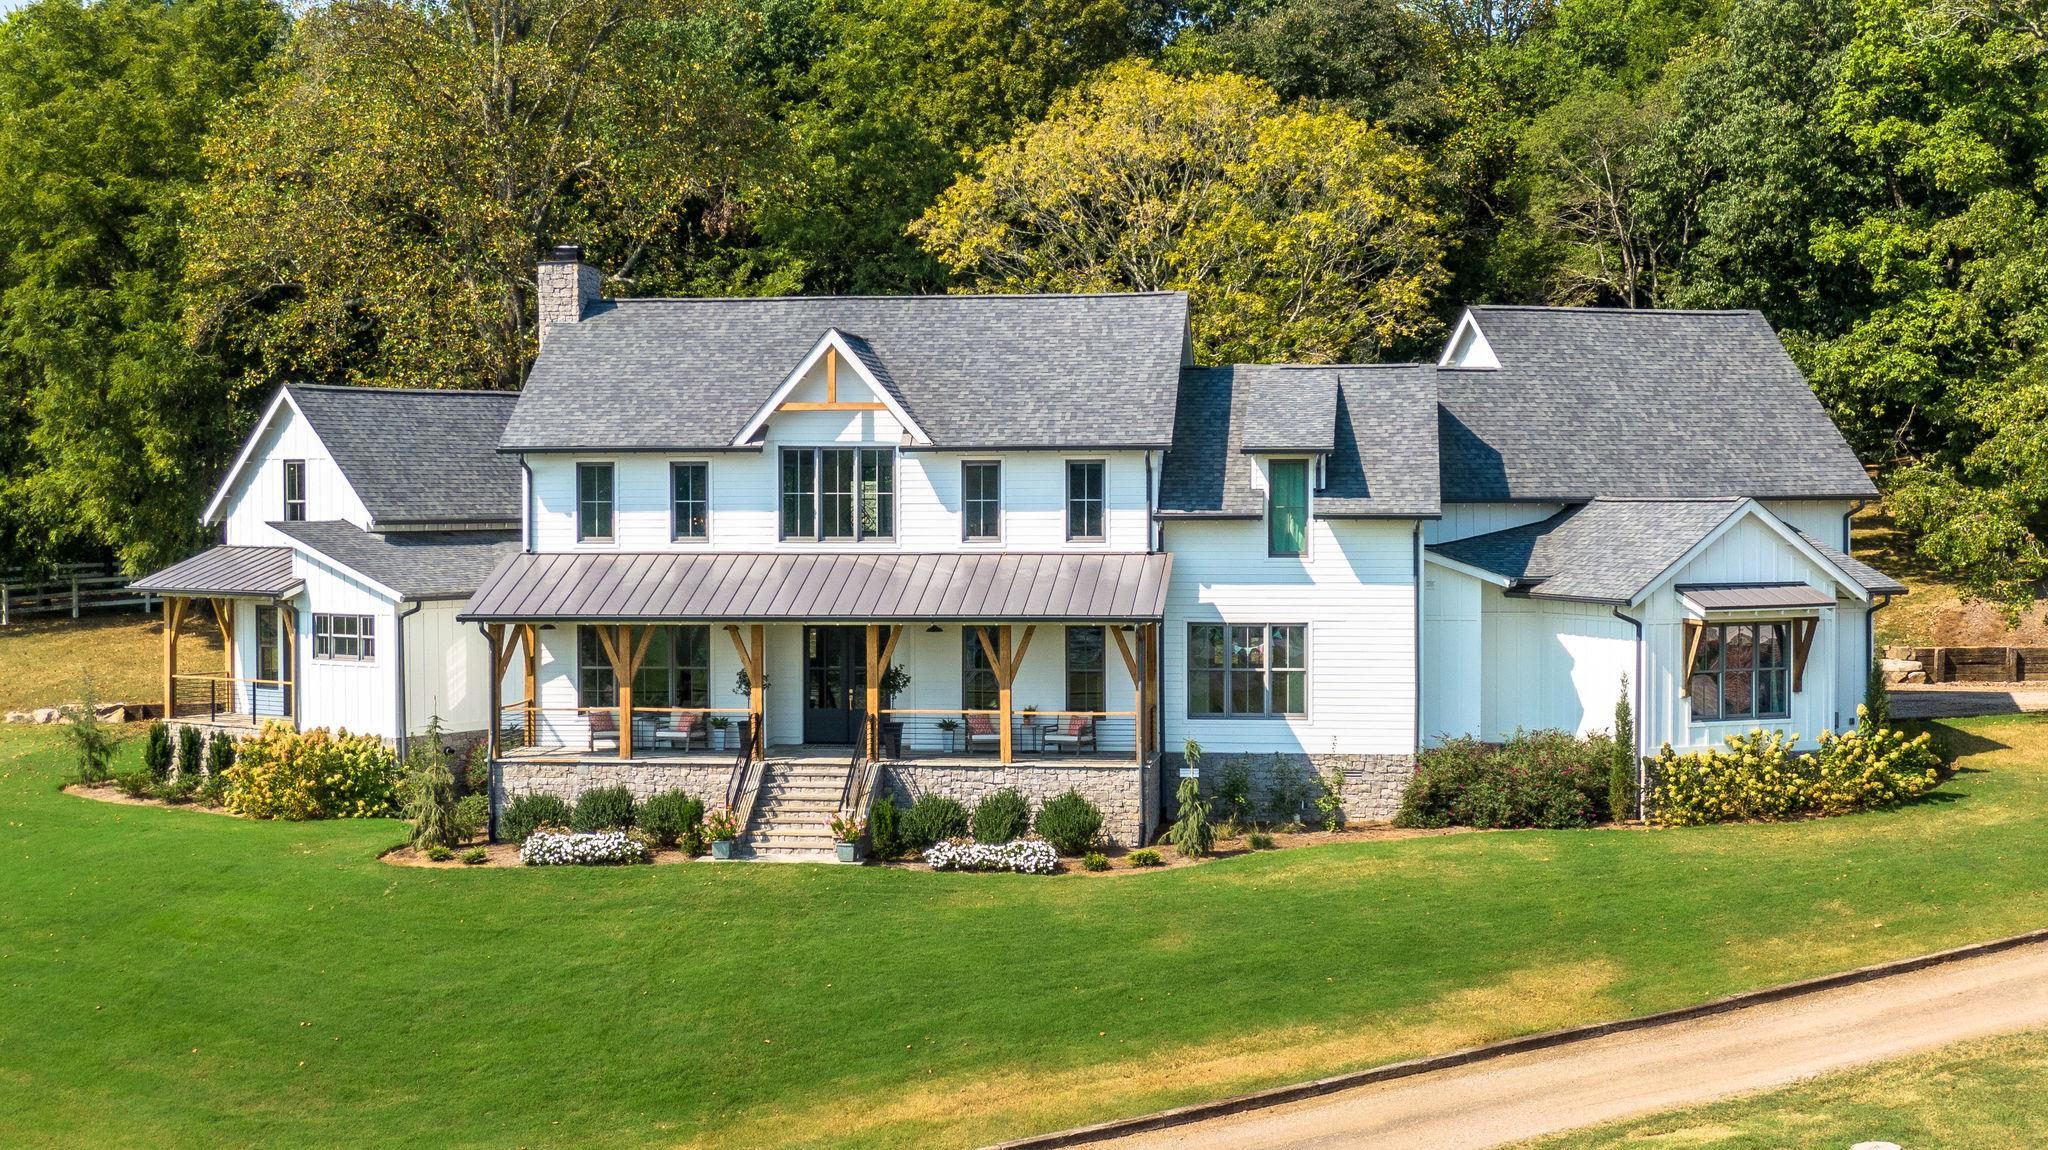 6709 Cool Springs Rd, Thompsons Station, TN 37179 - Thompsons Station, TN real estate listing